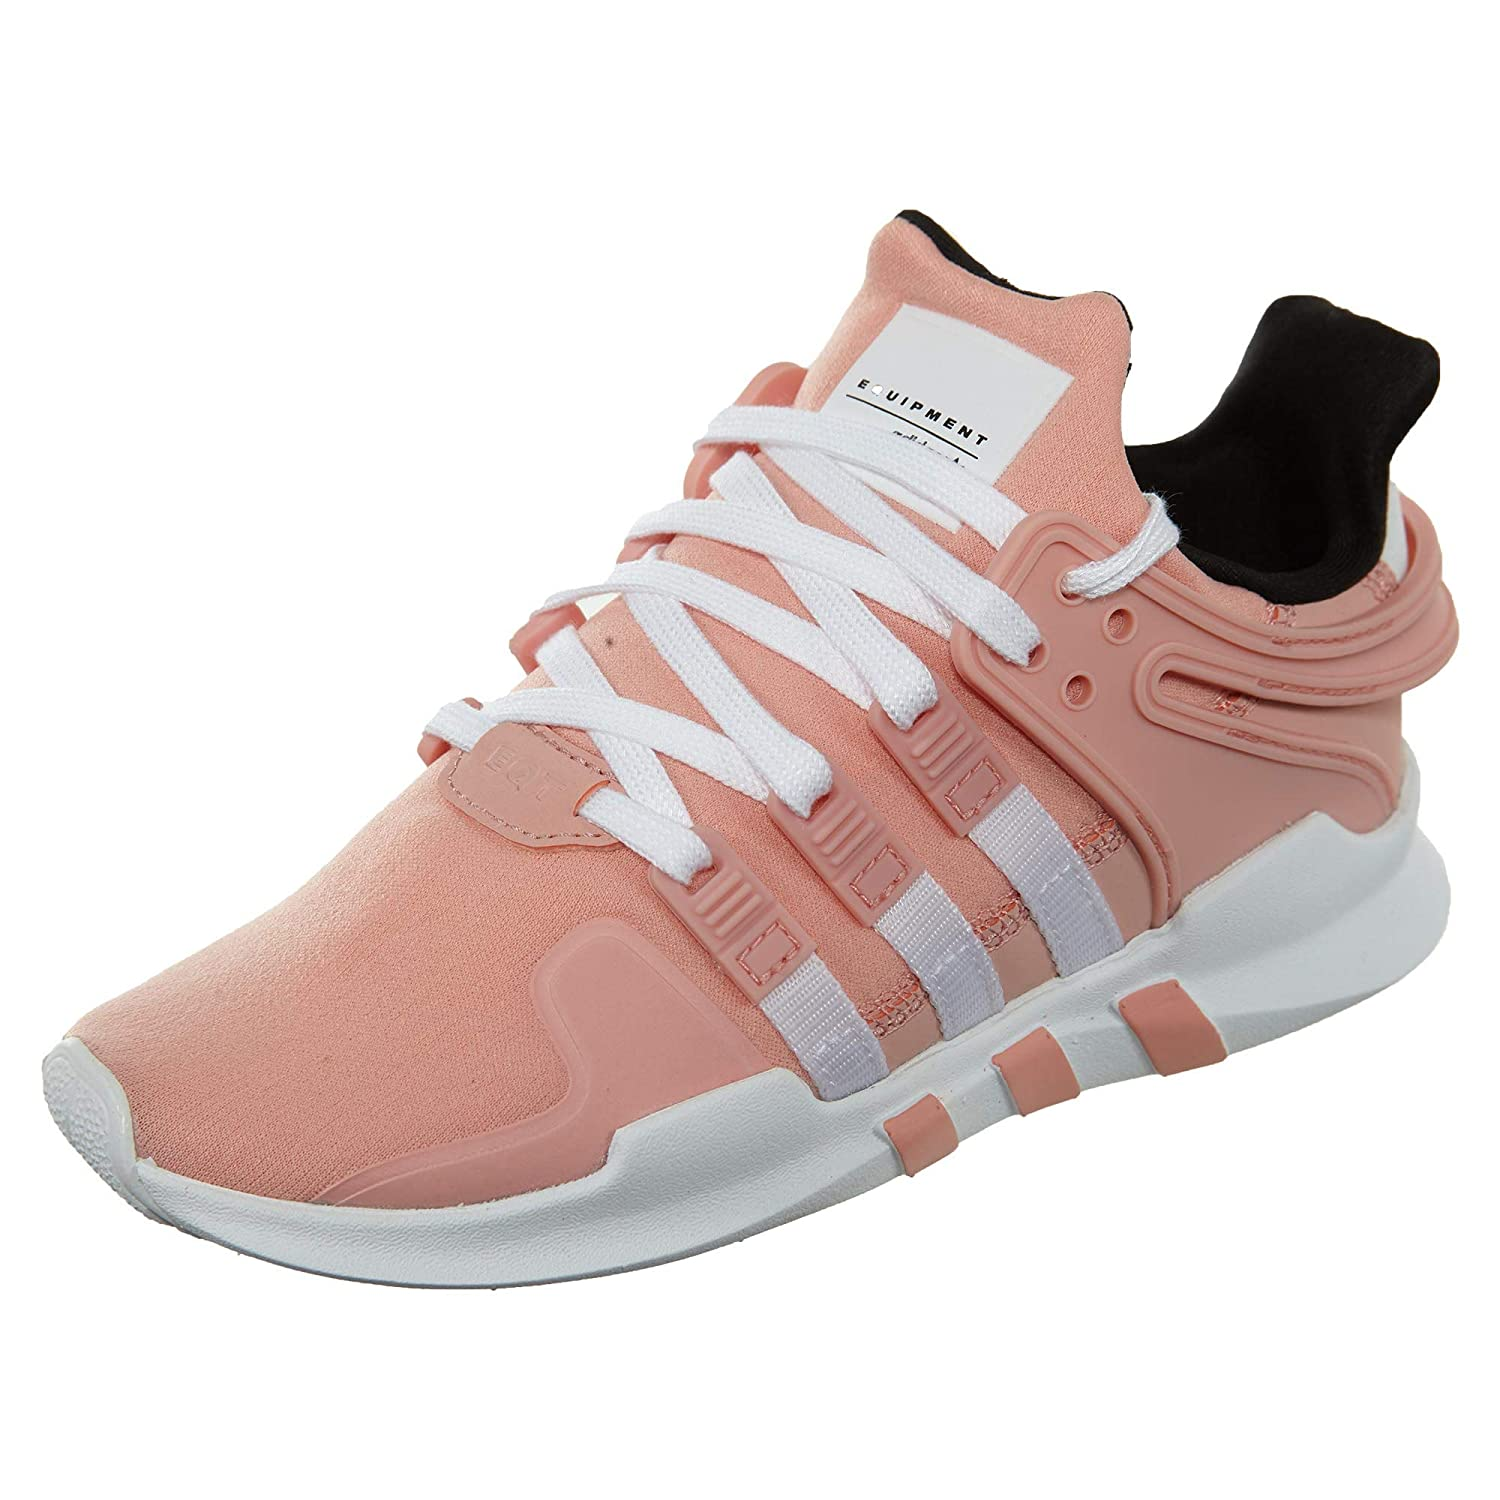 los angeles 76dfe 132a7 Amazon.com | adidas EQT Support Adv Trace Pink White Boys ...